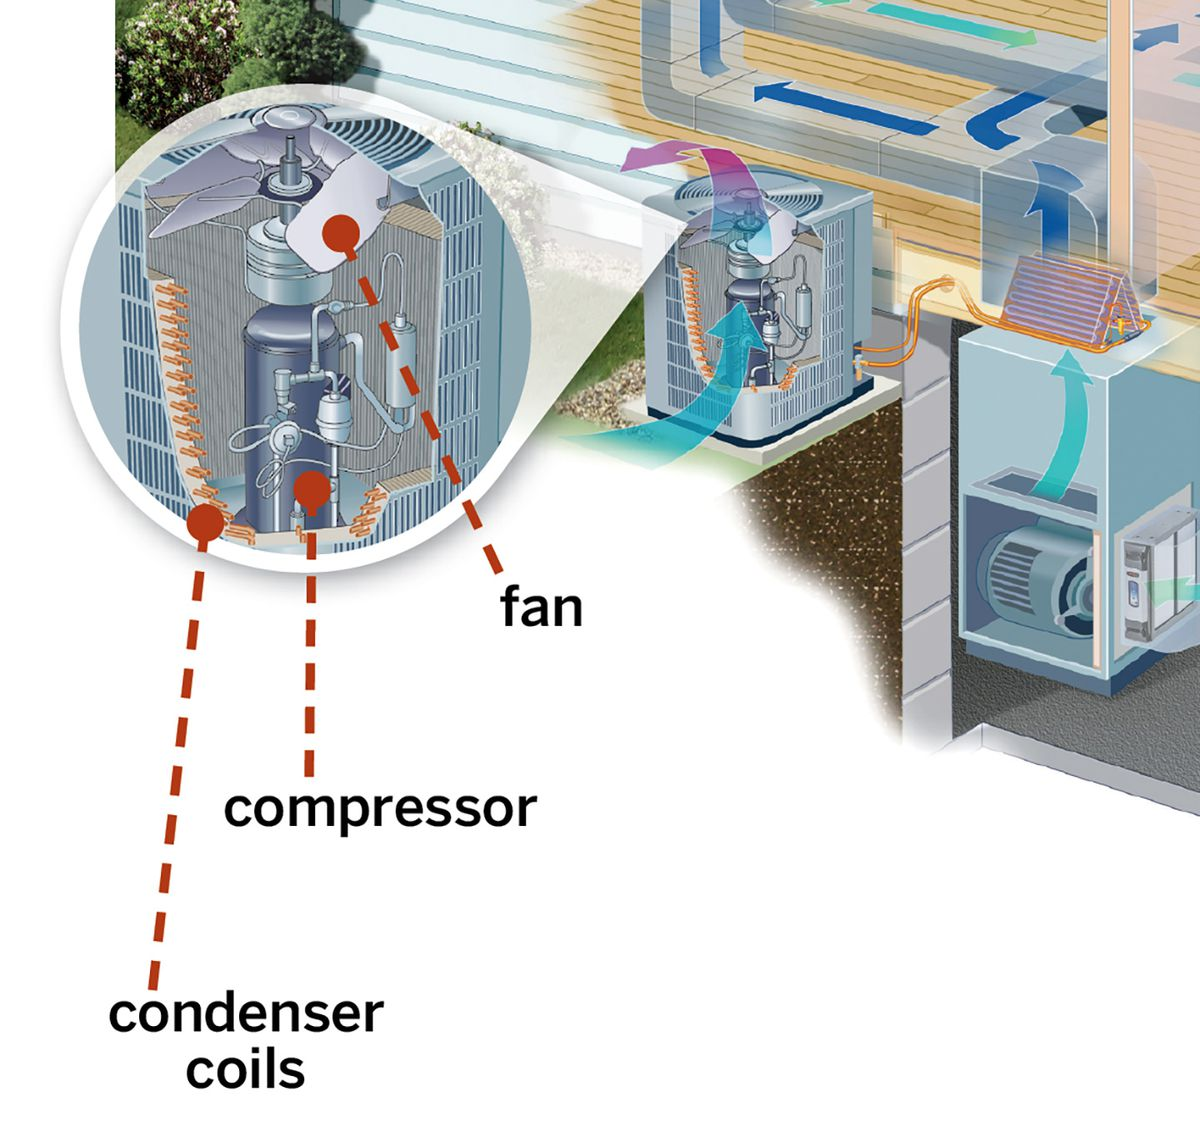 Central Air Conditioning System Diagram: Condenser